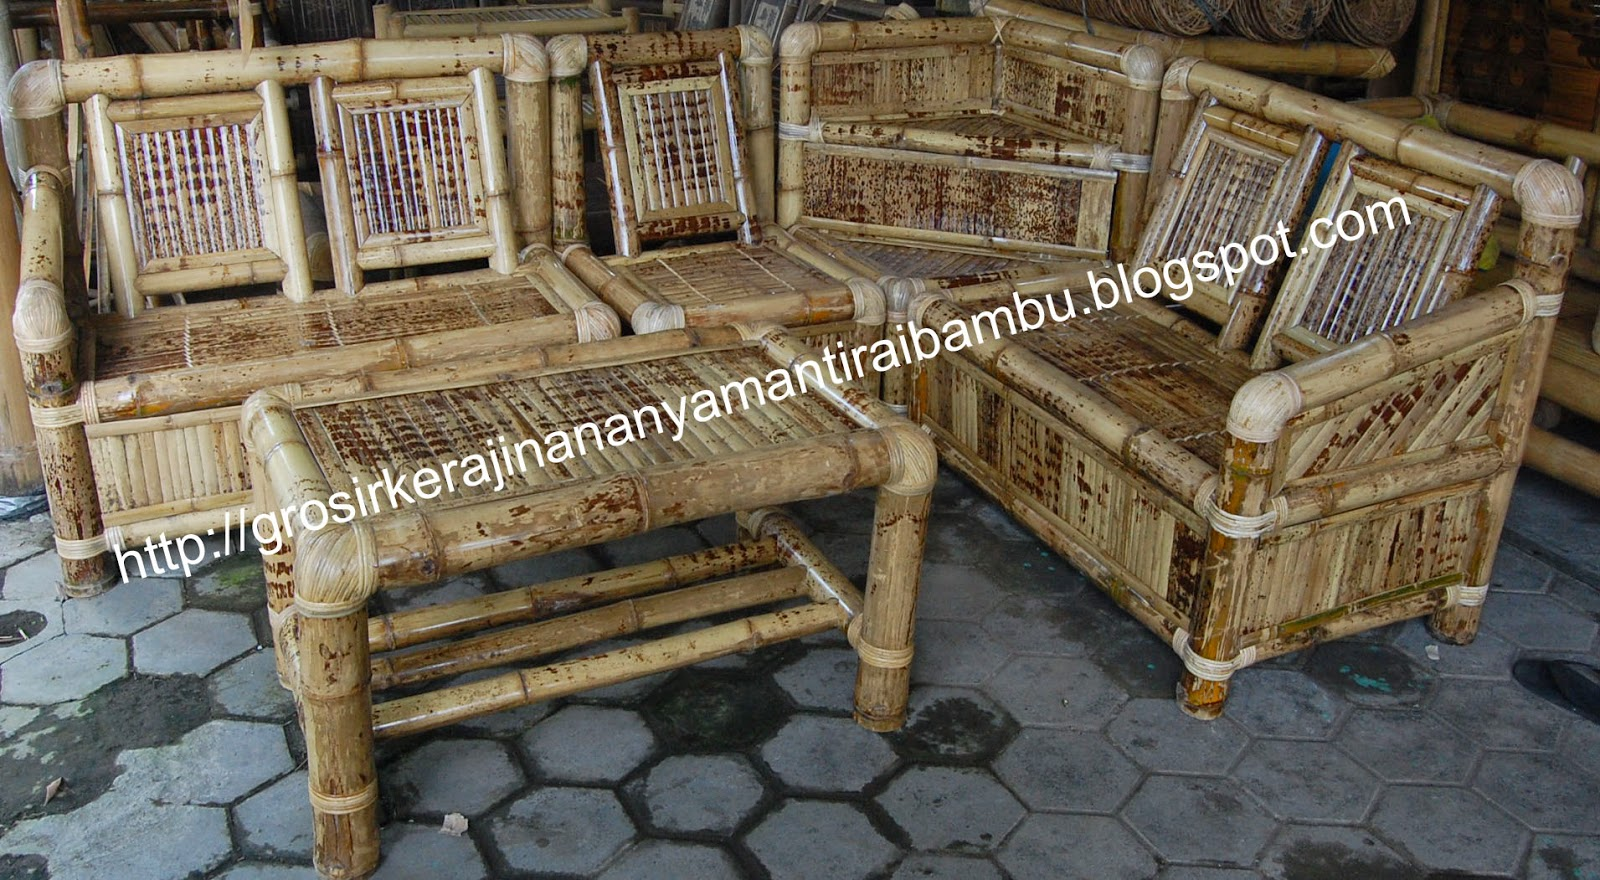 Jual Furniture Bambu Murah Furniture Bambu Jogja Furniture